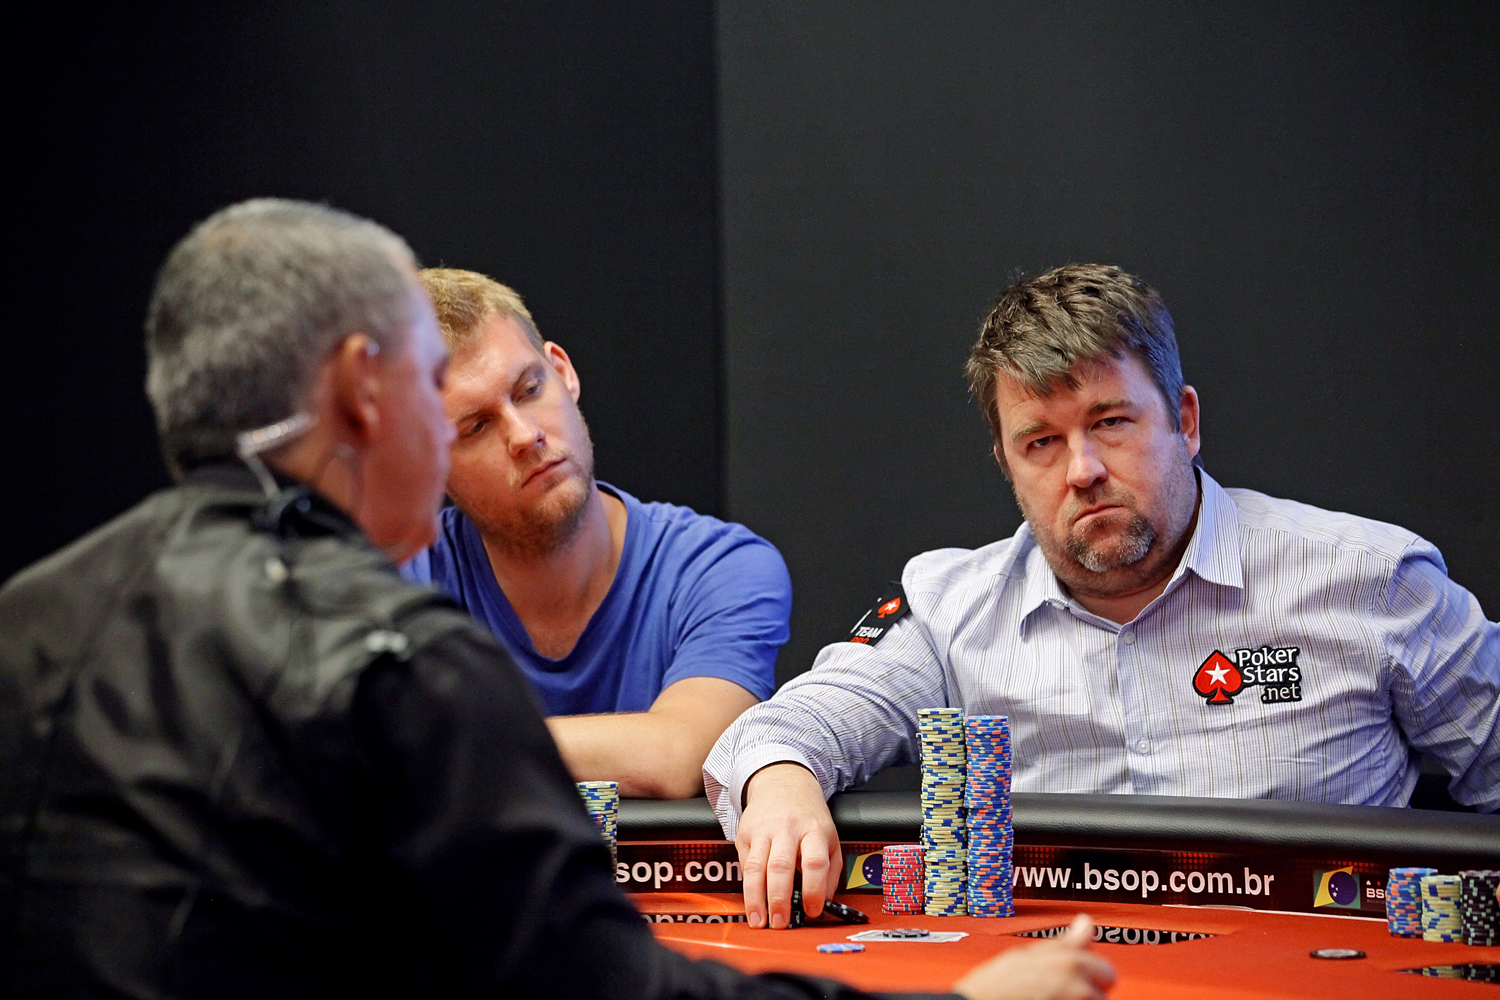 chris moneymaker bsop dia 3